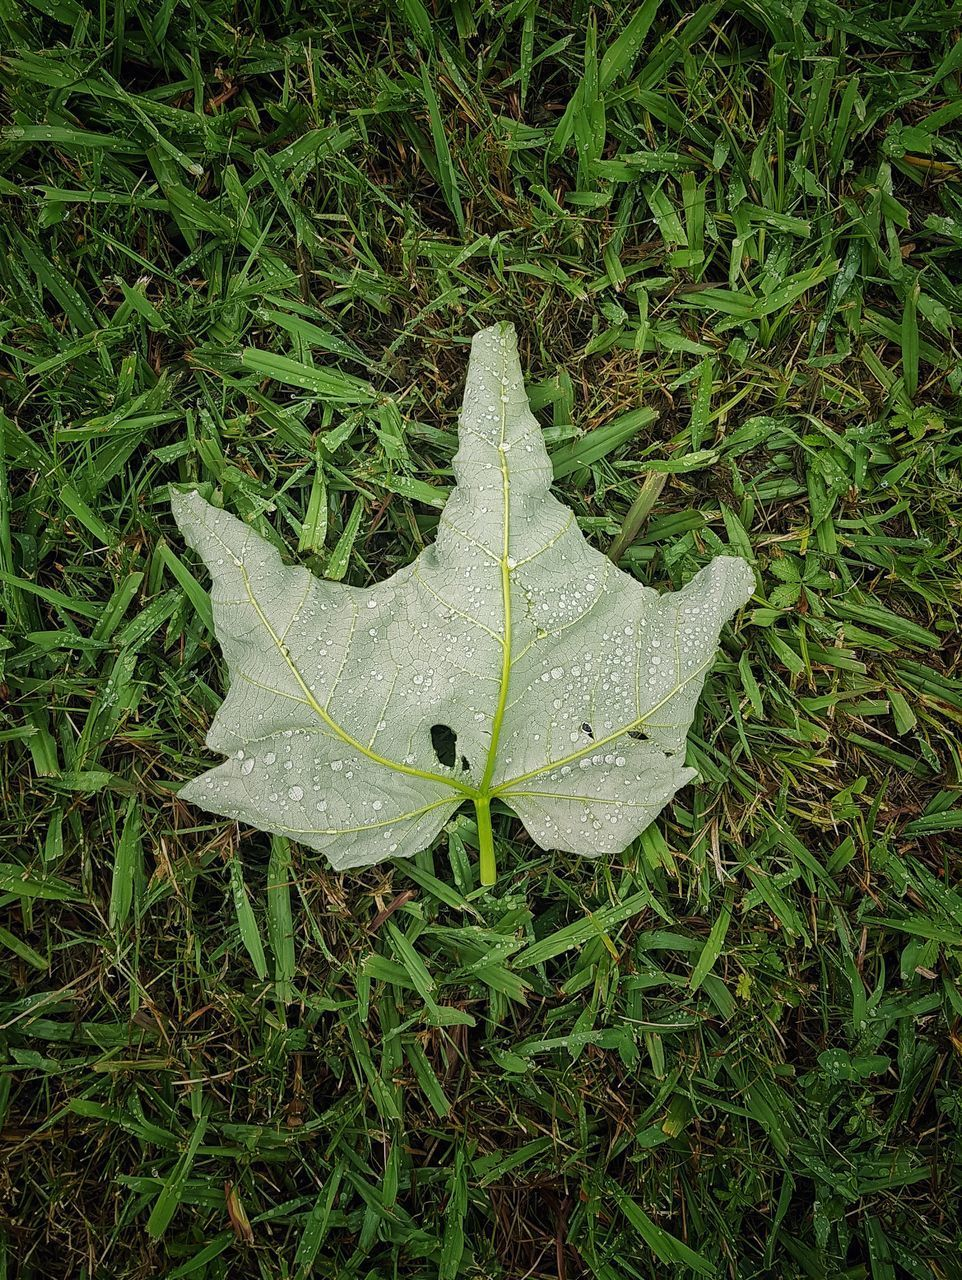 HIGH ANGLE VIEW OF WET LEAF ON GRASS